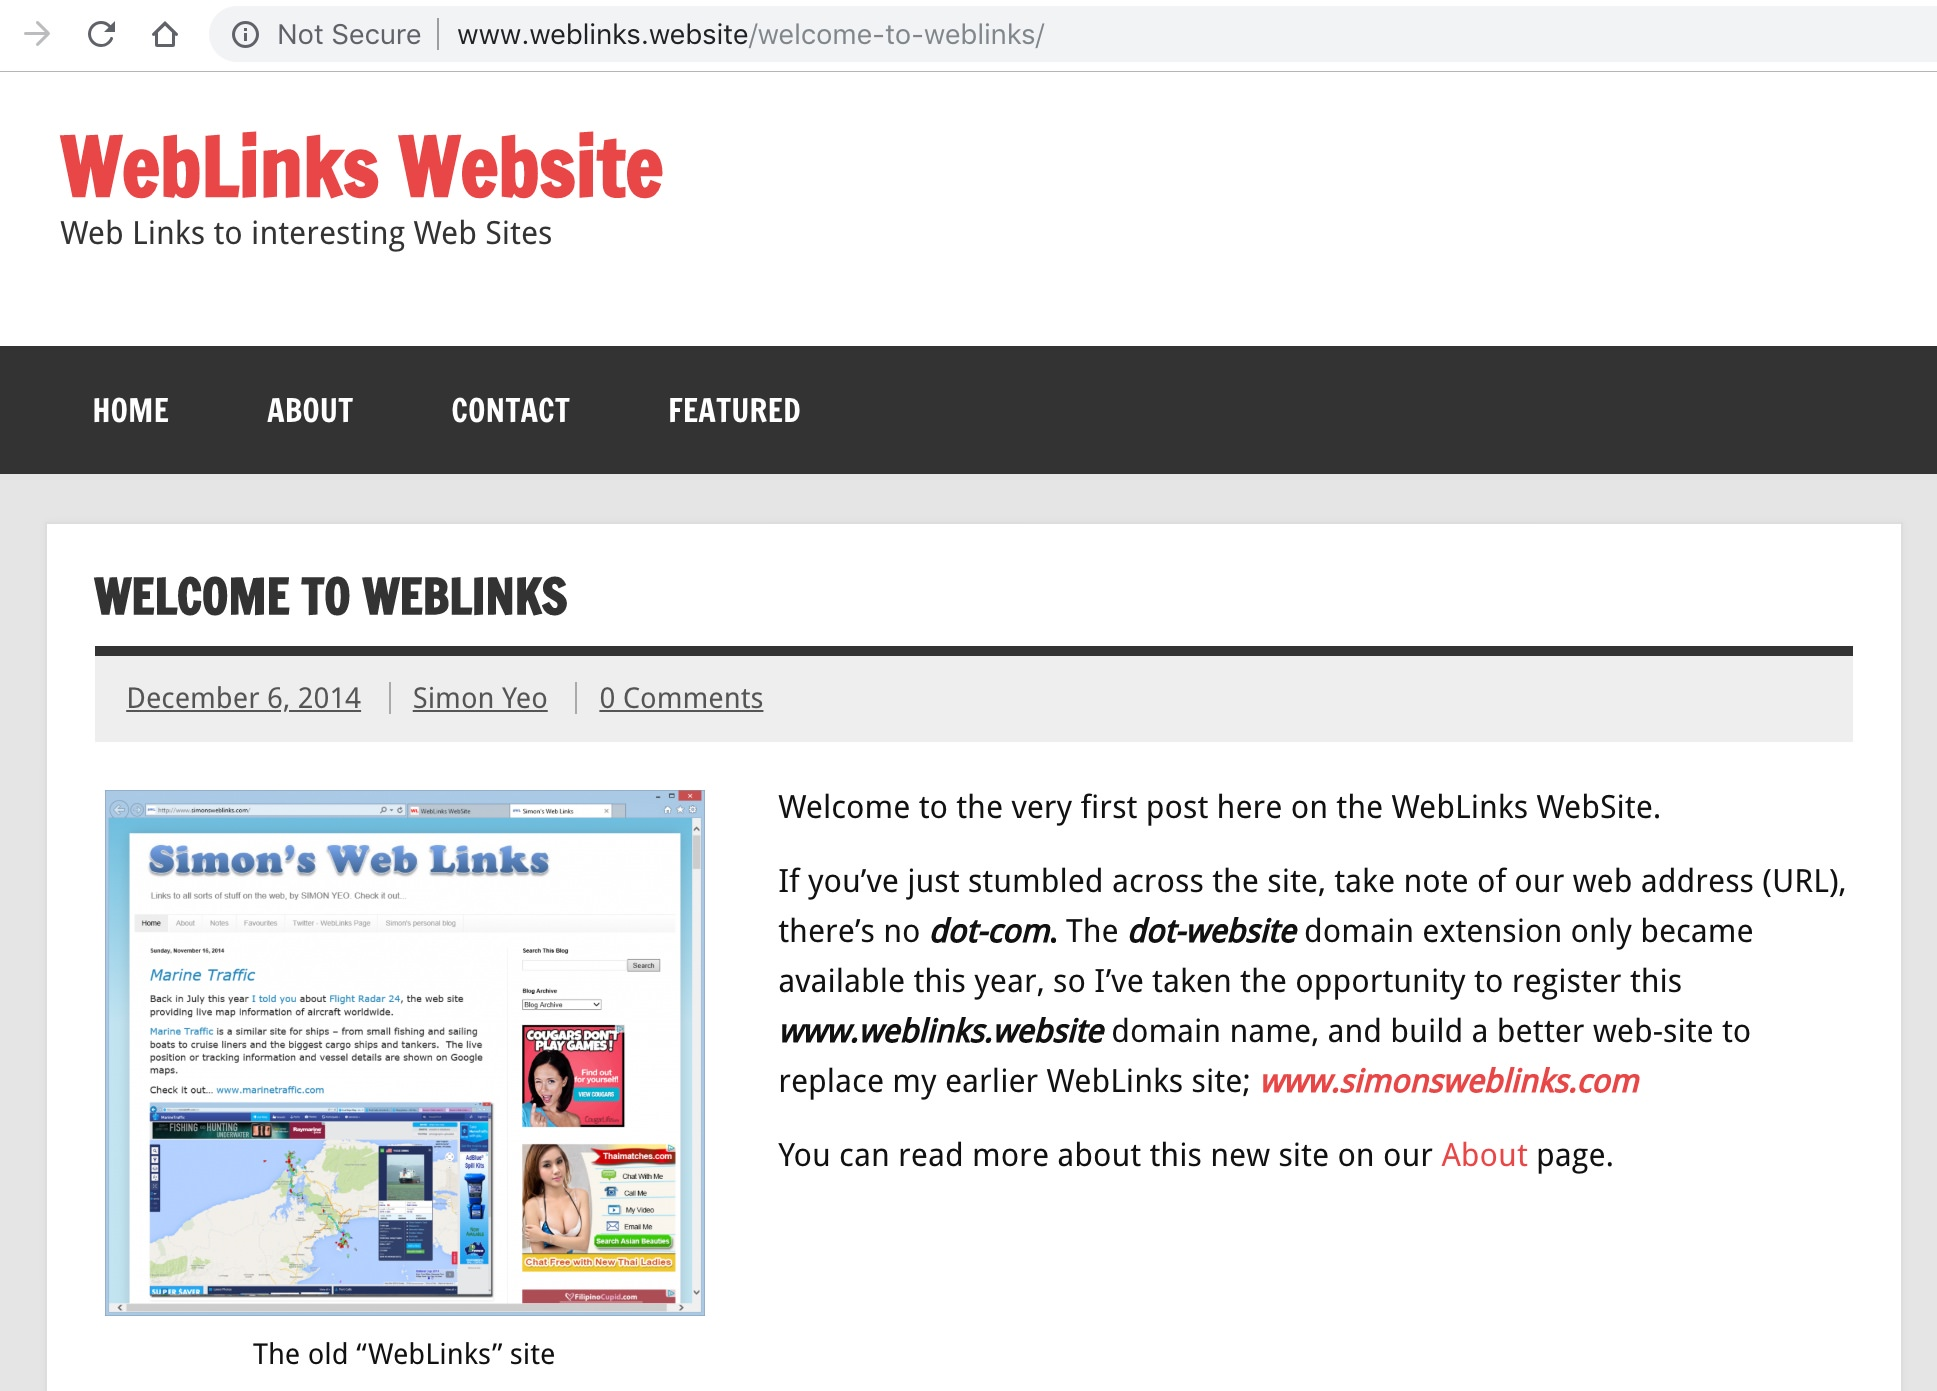 WebLinks Website